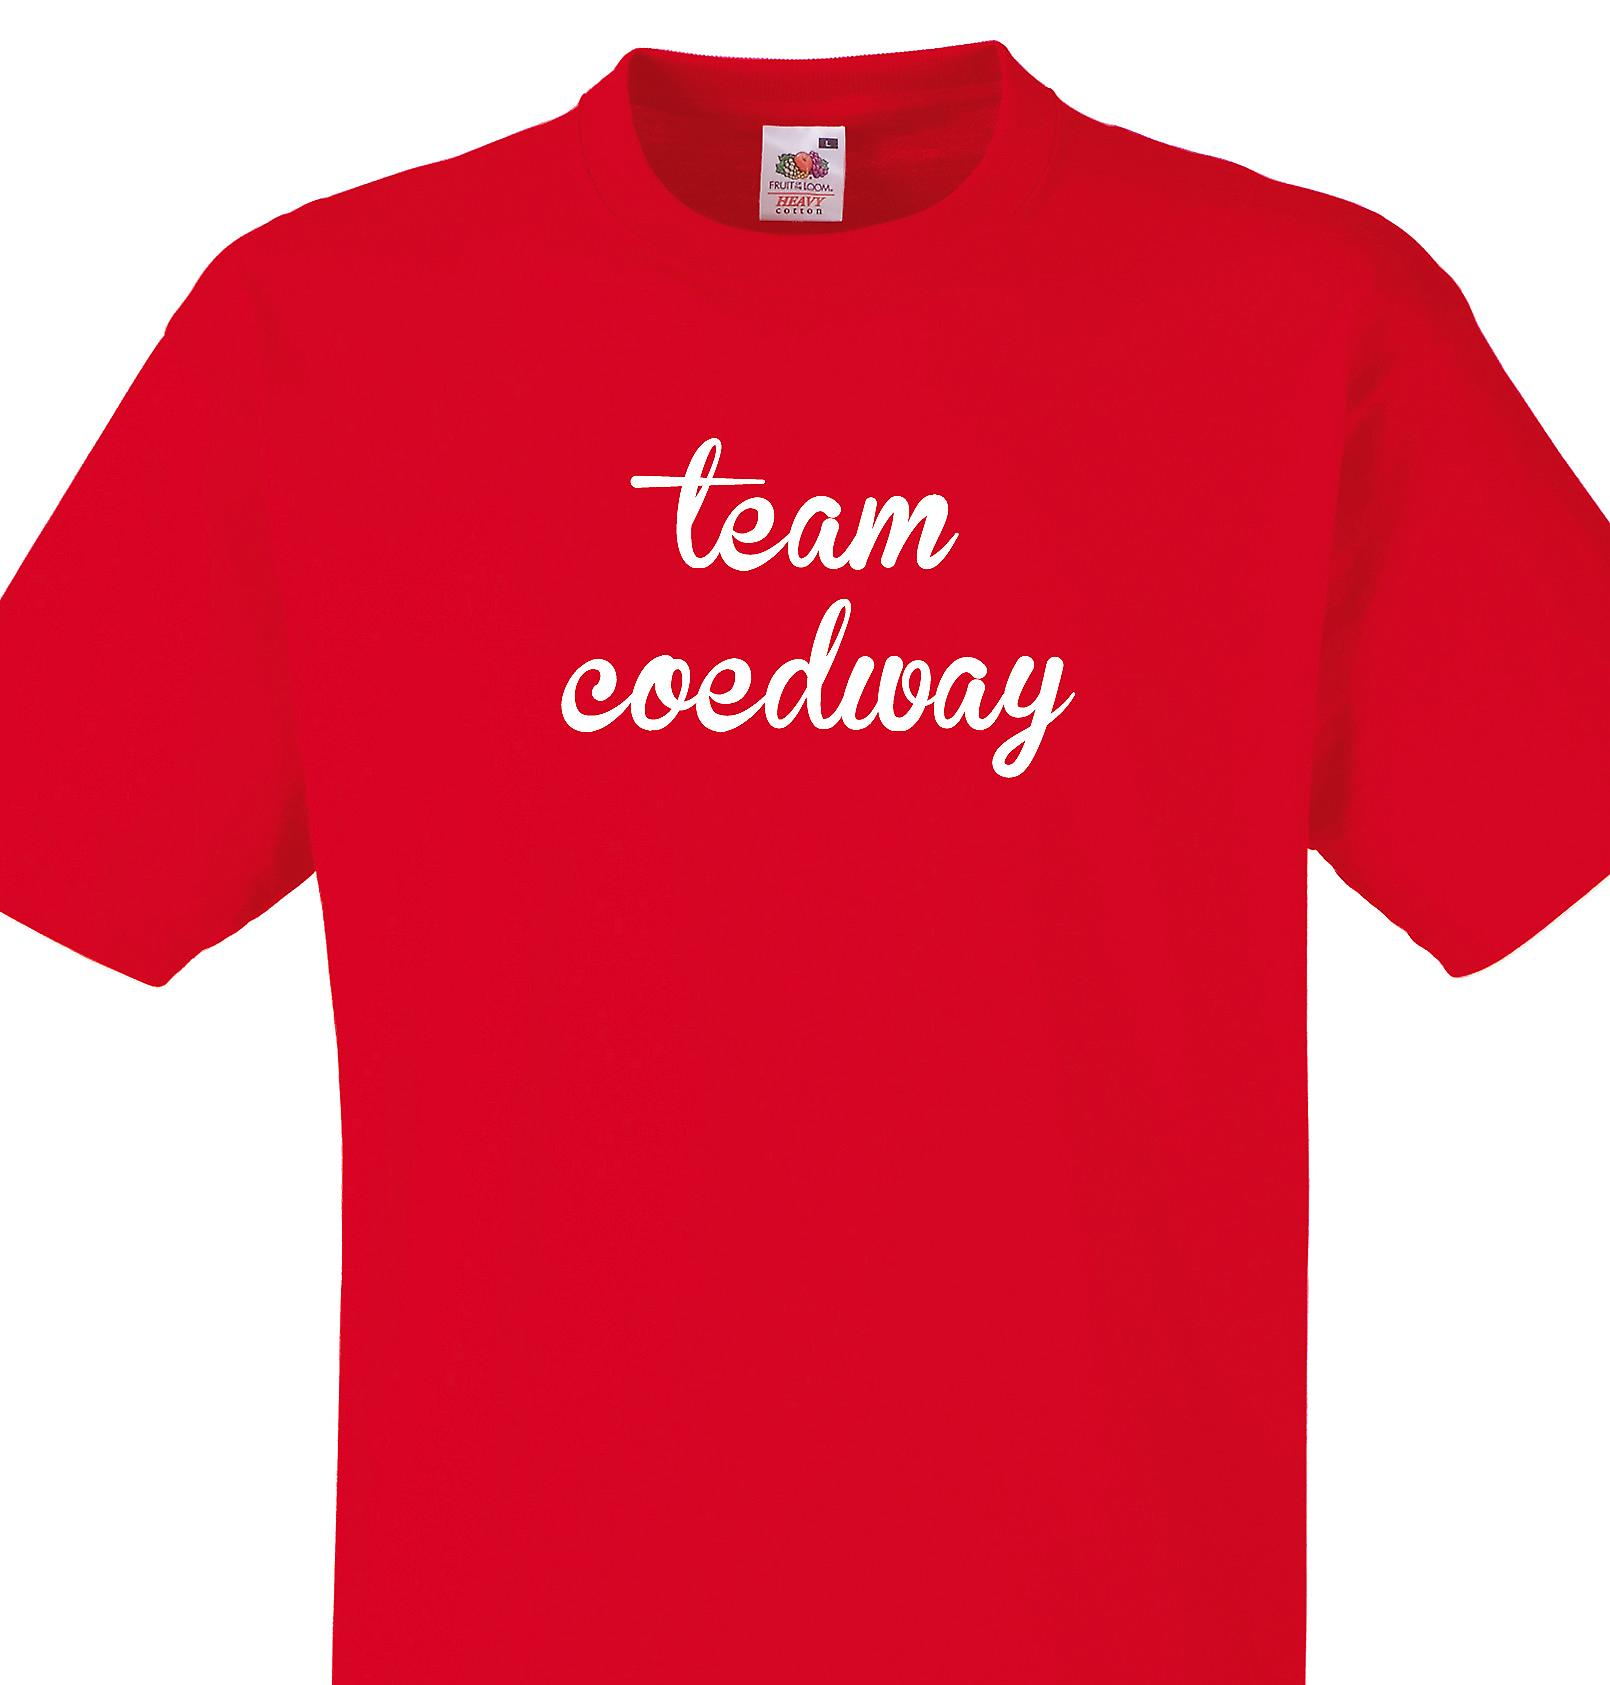 Team Coedway Red T shirt